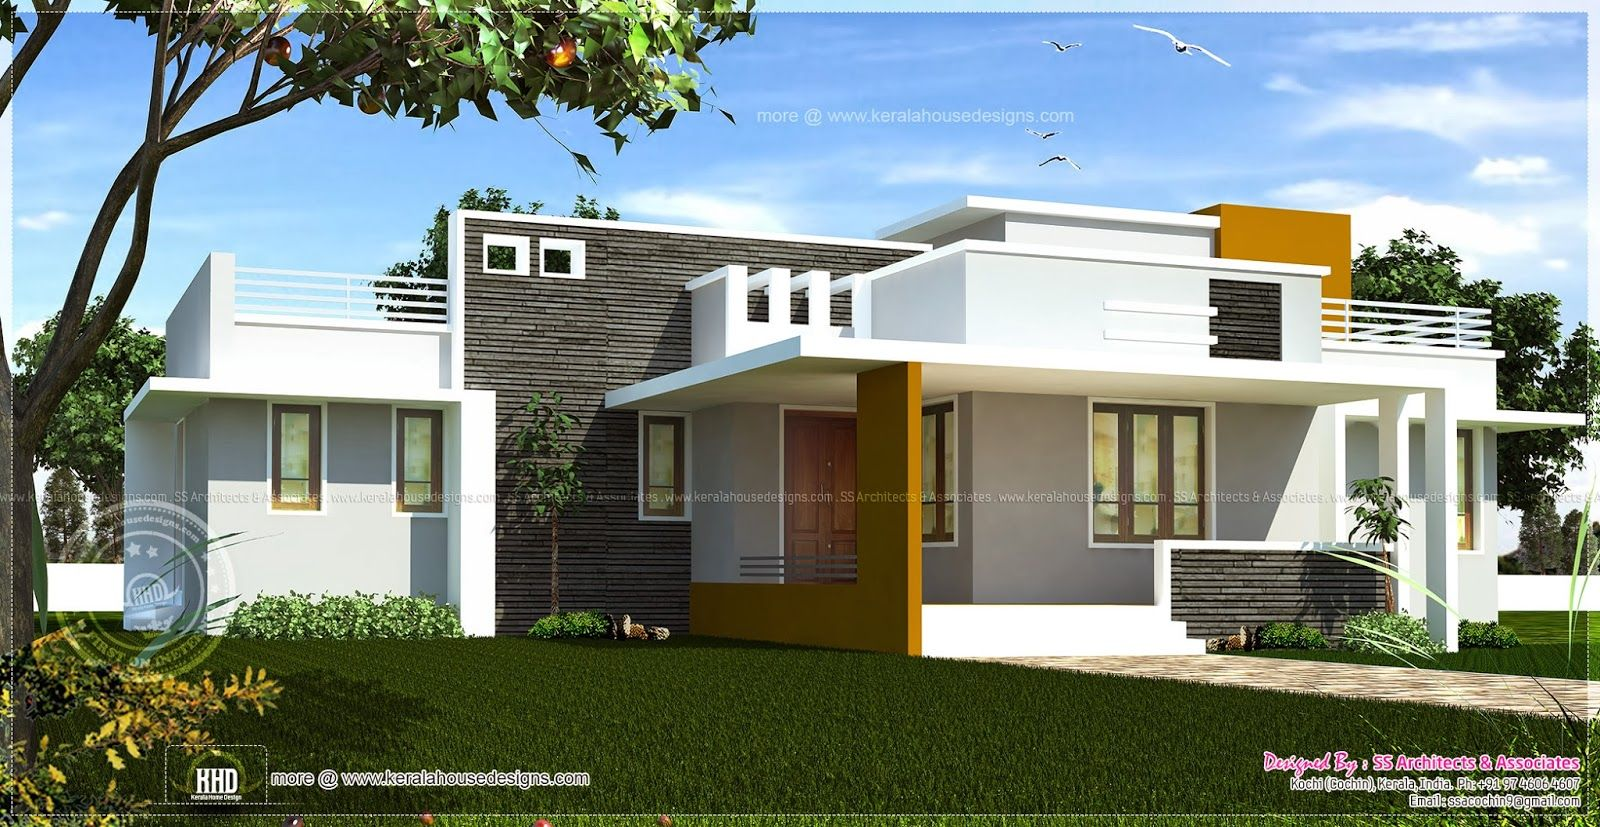 Excellent single home designs single floor contemporary for Modern design single storey homes